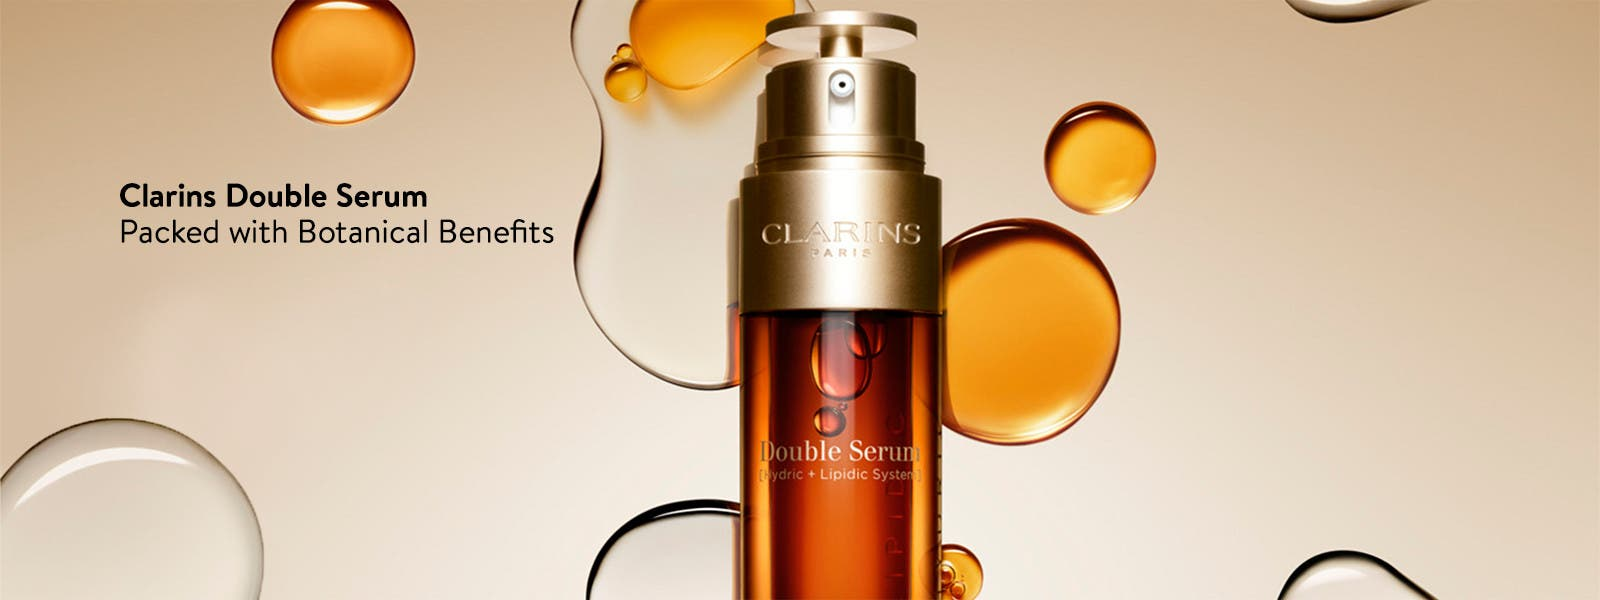 Clarins Double Serum, packed with botanical benefits.